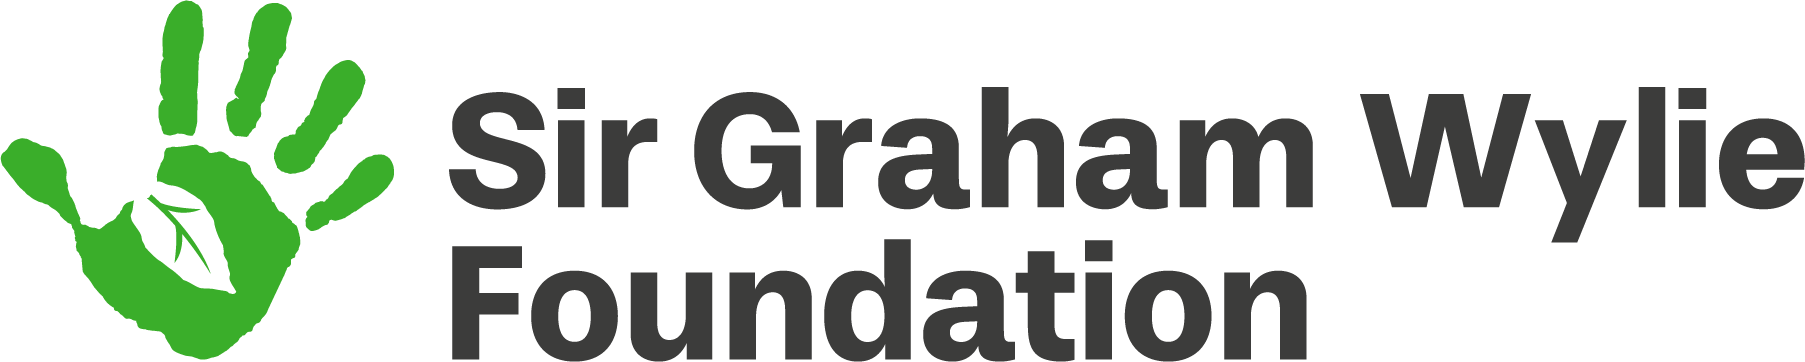 Sir Graham Wylie Foundation